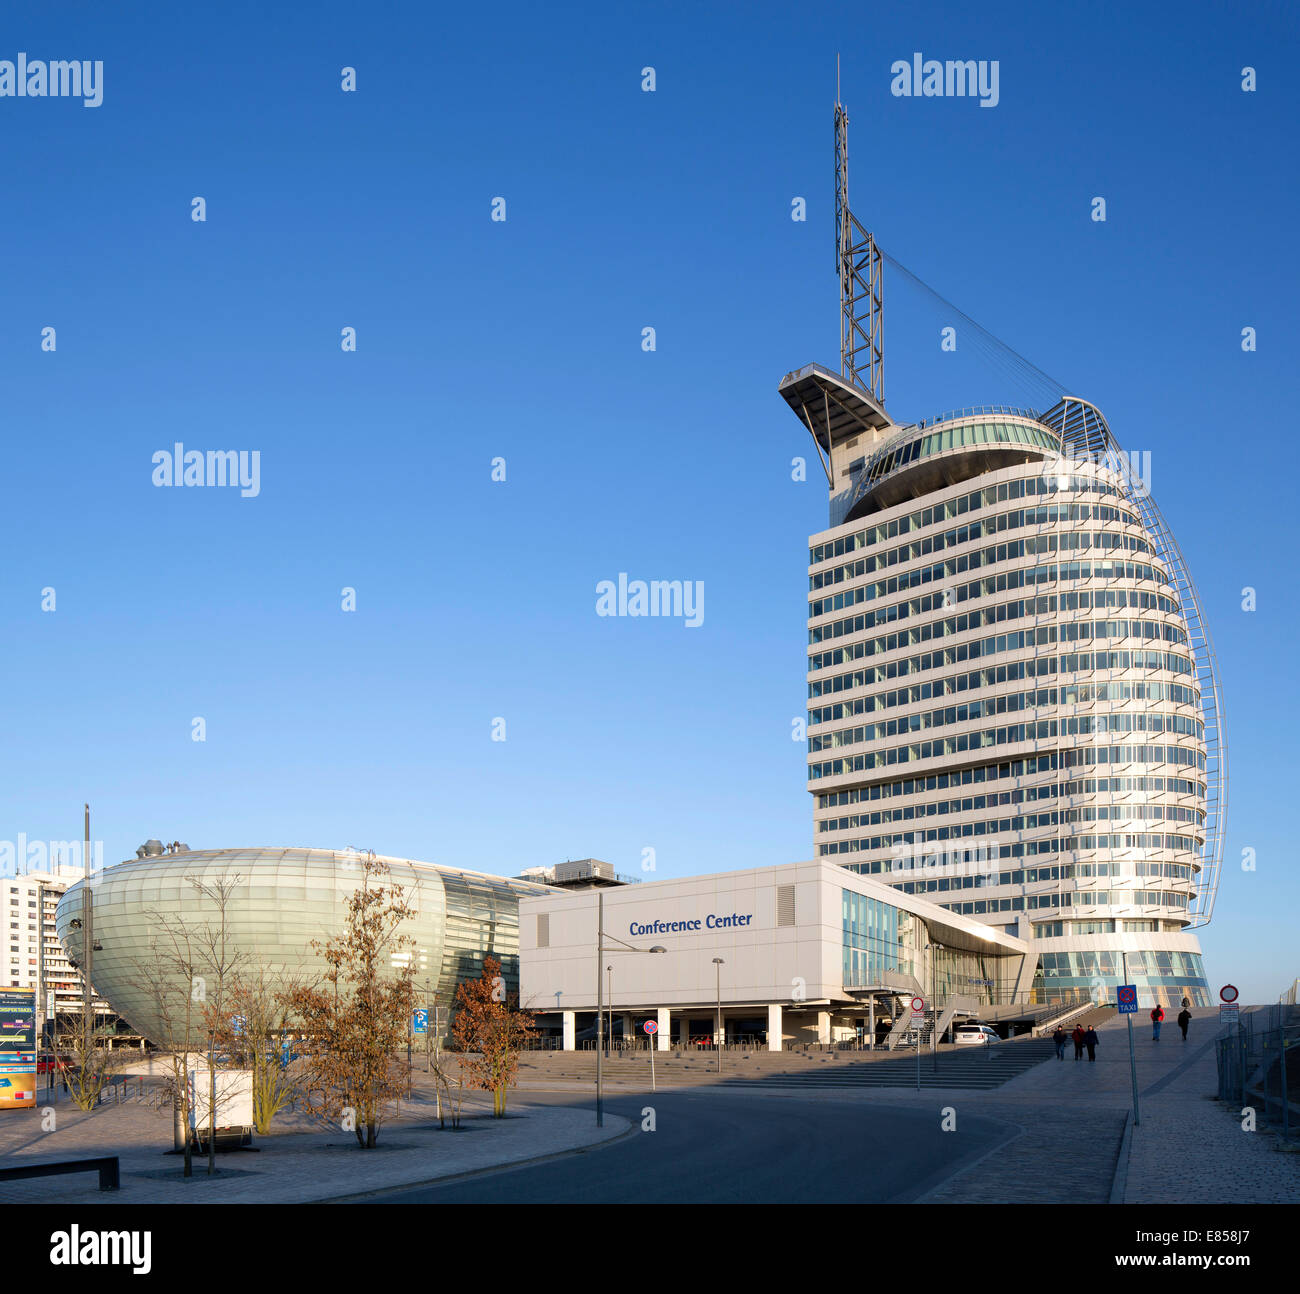 Atlantic Hotel Sail City, Klimahaus Bremerhaven, Conference Center, Havenwelten, Bremerhaven, Bremen, Germany - Stock Image